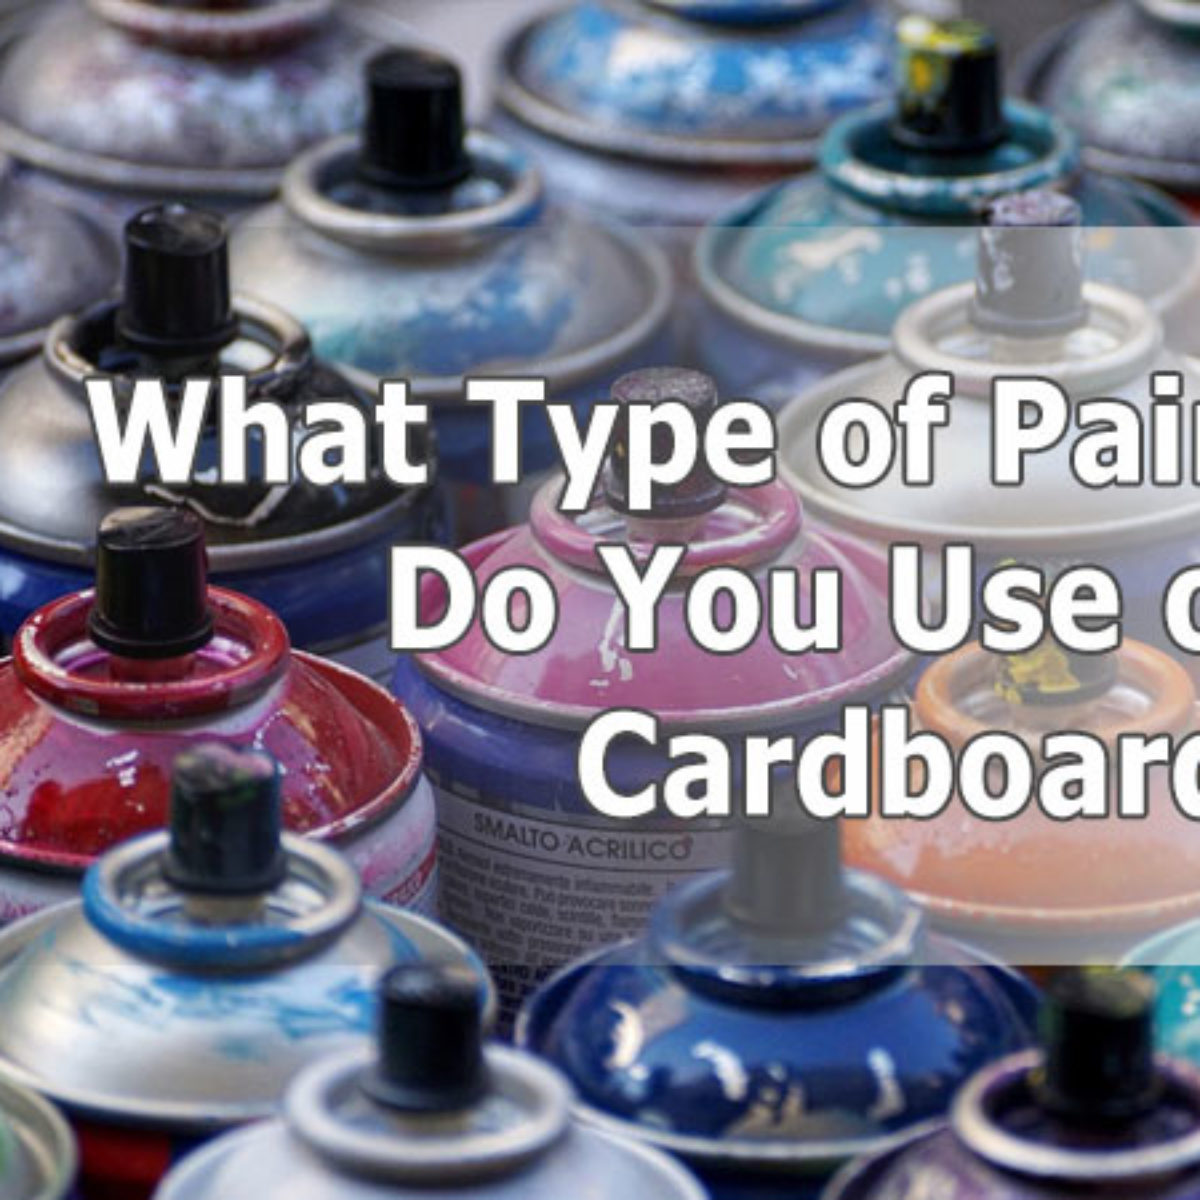 What Type Of Paint Do You Use On Cardboard